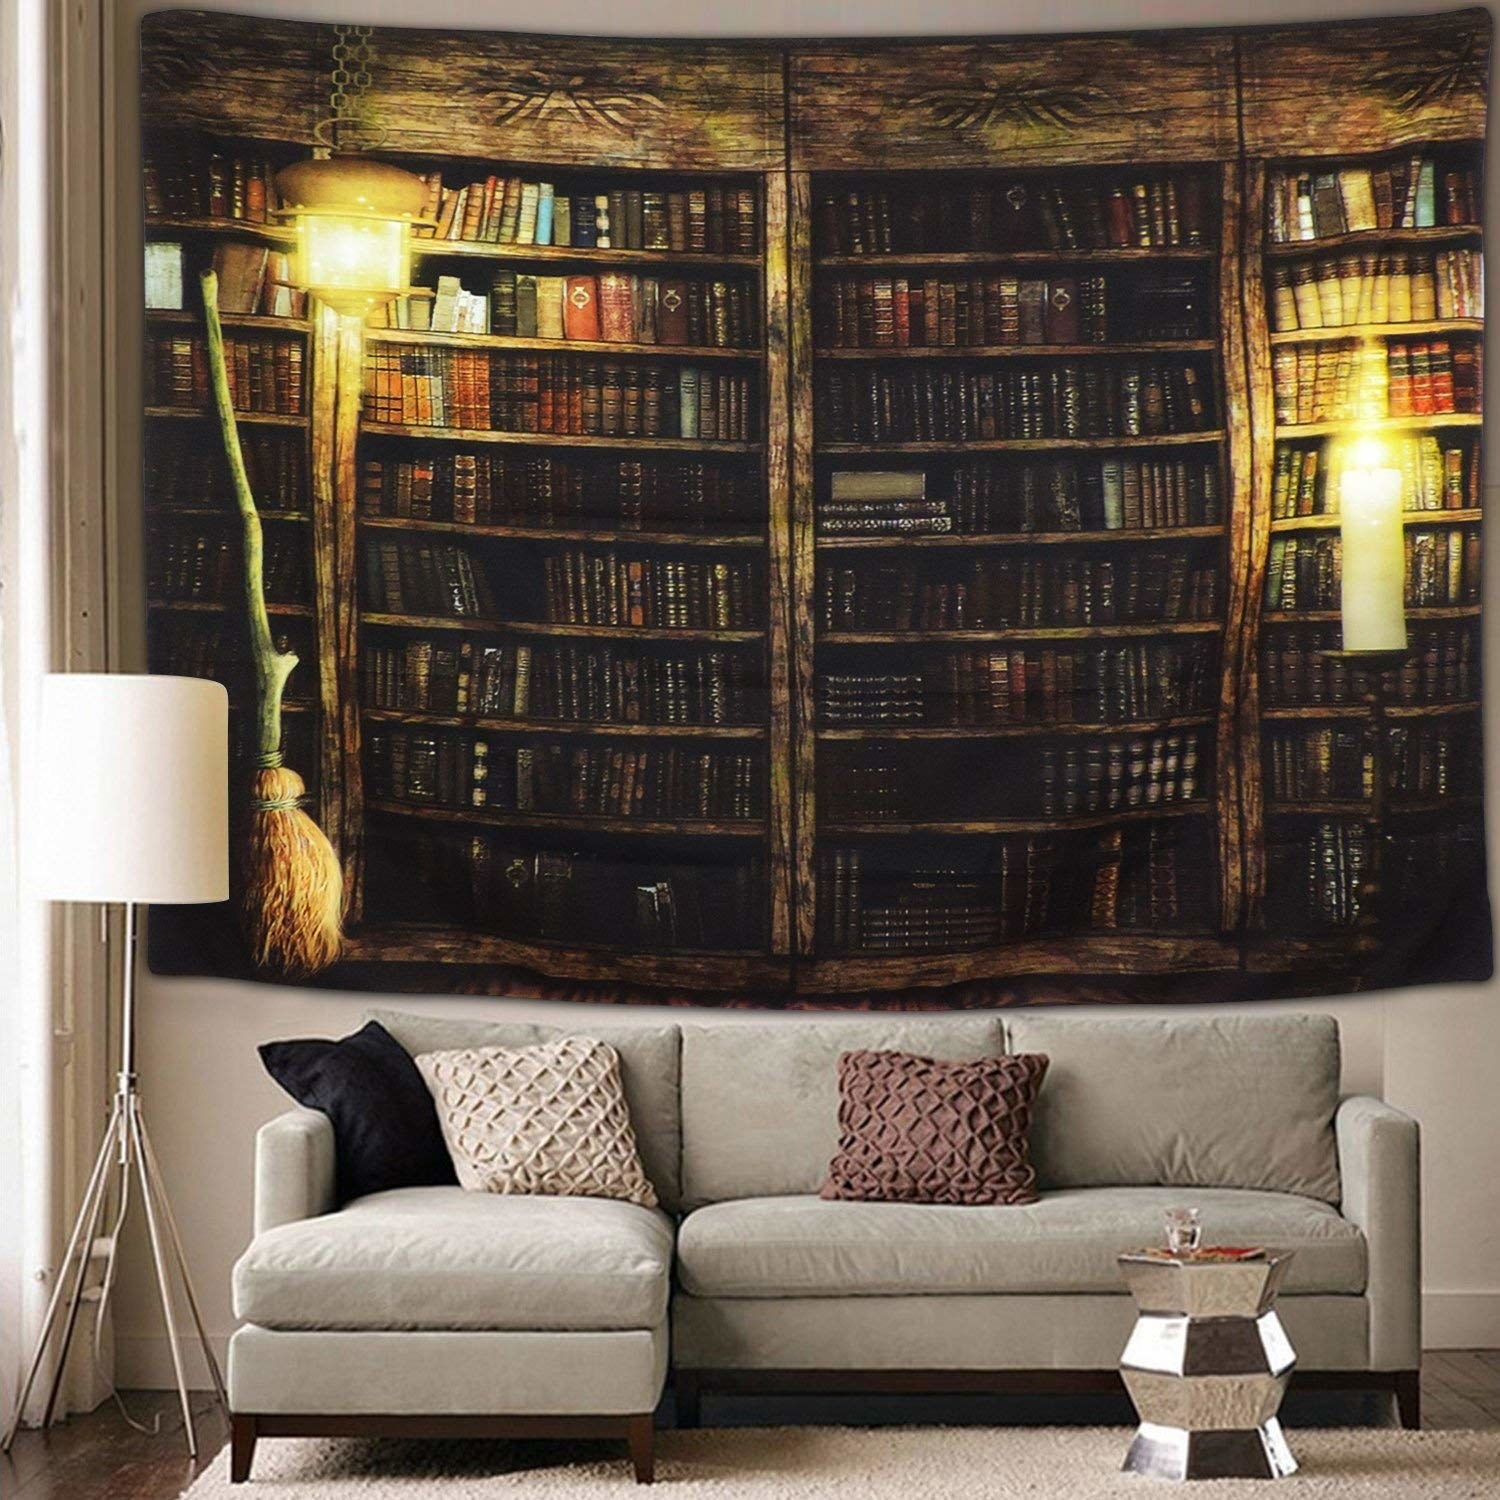 the book-inspired tapestry hanging behind a couch